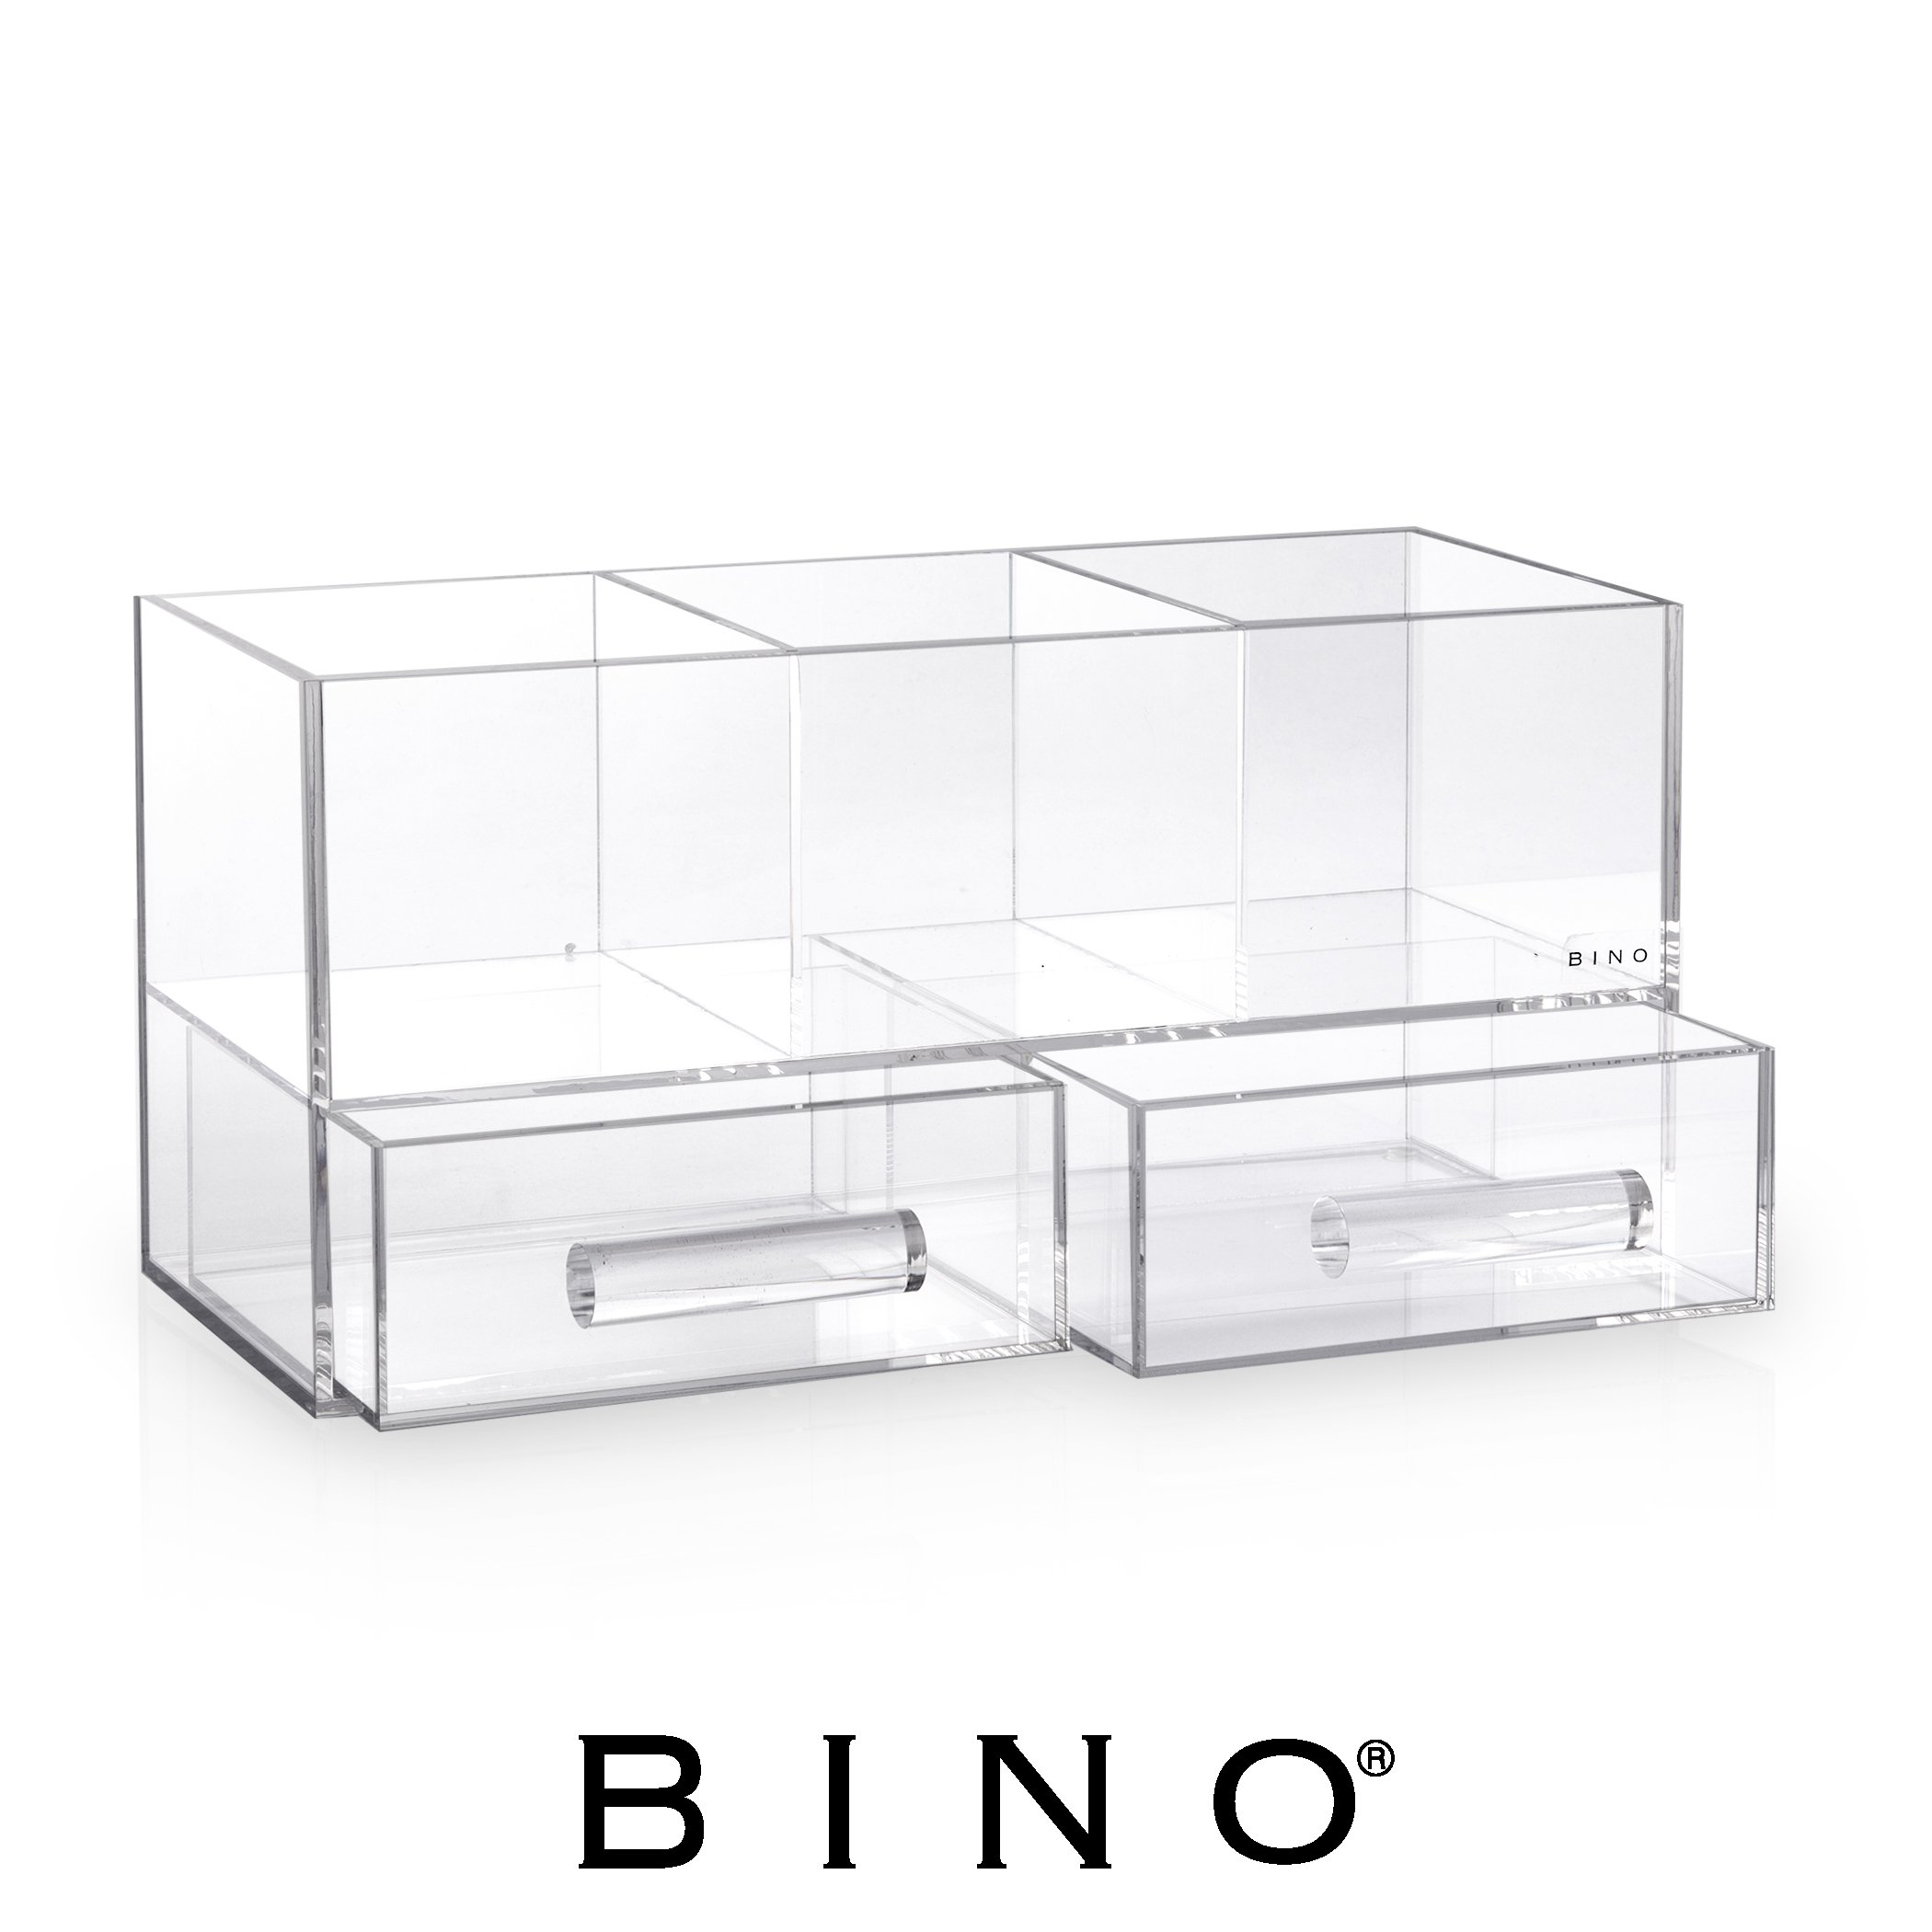 BINO Acrylic Jewelry and Makeup Organizer with 2 Removable Drawers, - Clear and Transparent Cosmetic Storage Display Chest Box Case